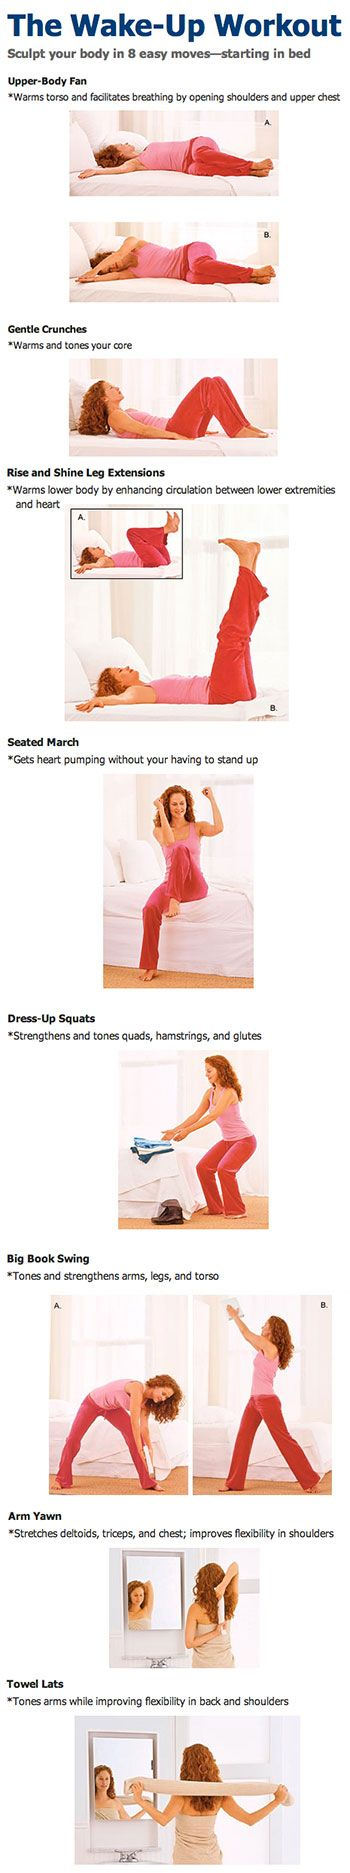 The Wake-Up Workout: Sculpt your body in 8 easy moves—starting in bed..sounds silly but I'm lazy !